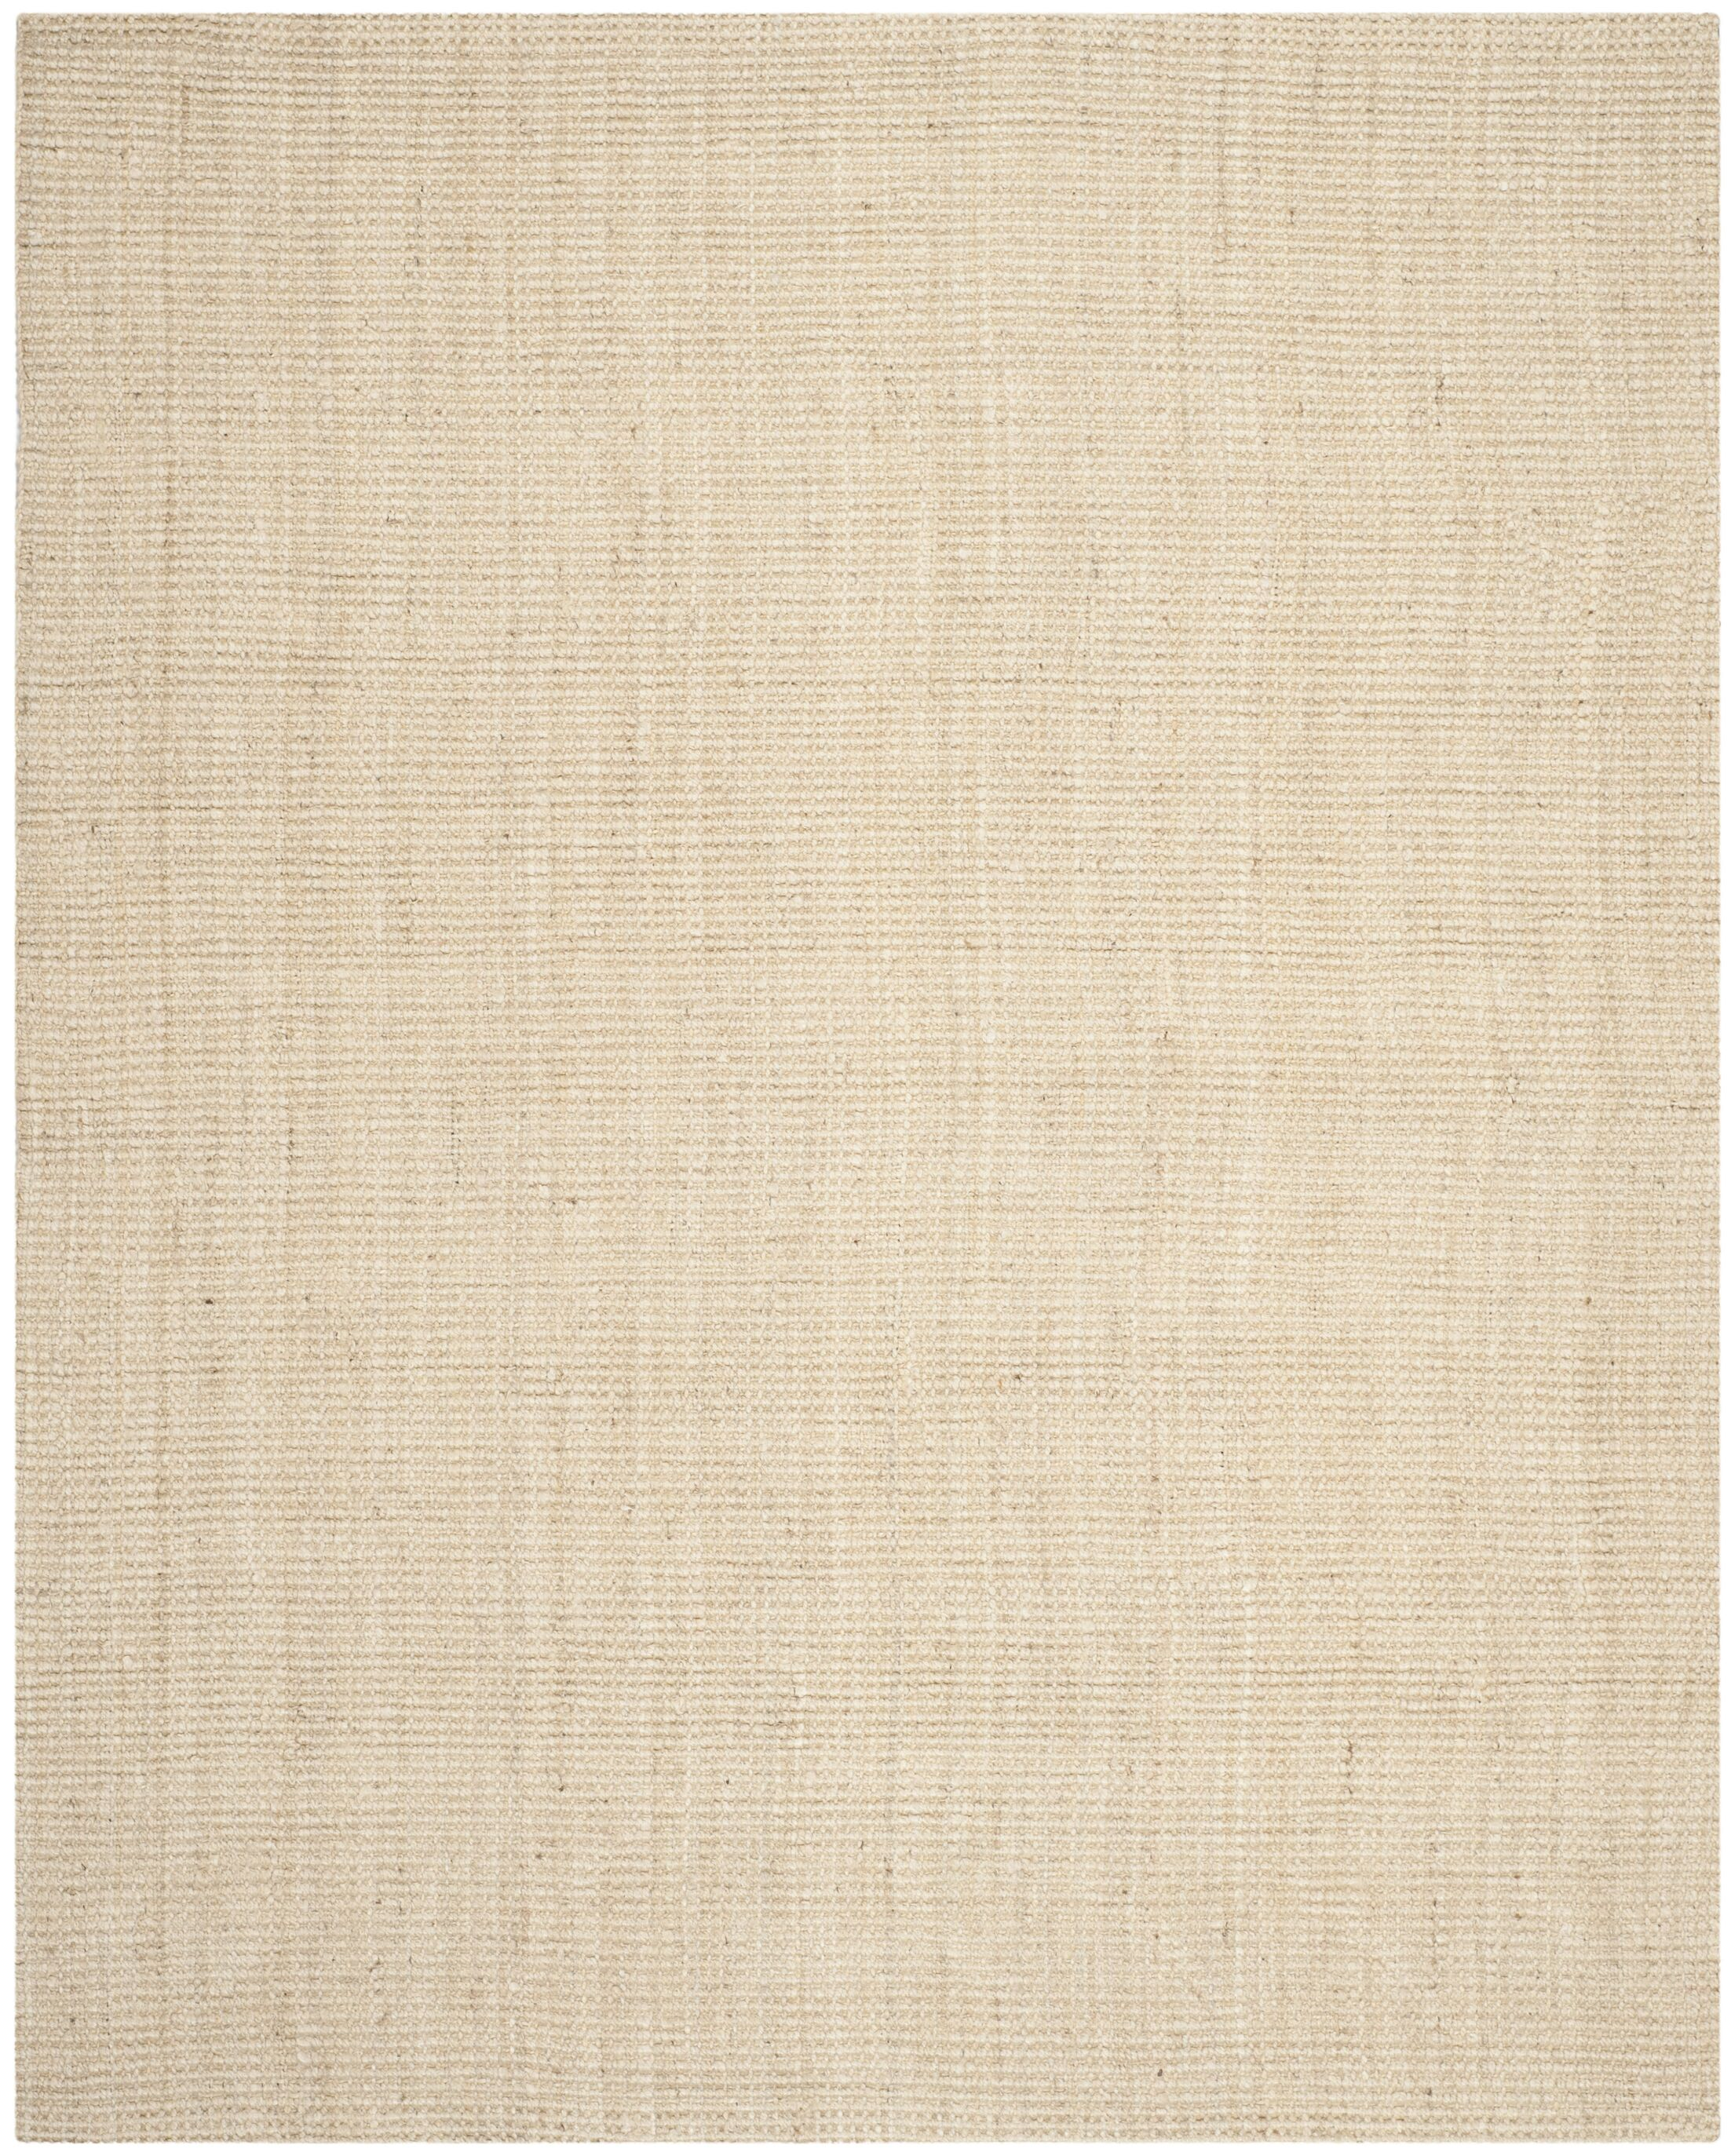 Muriel Hand-Woven Ivory Area Rug Rug Size: Rectangle 9' x 12'